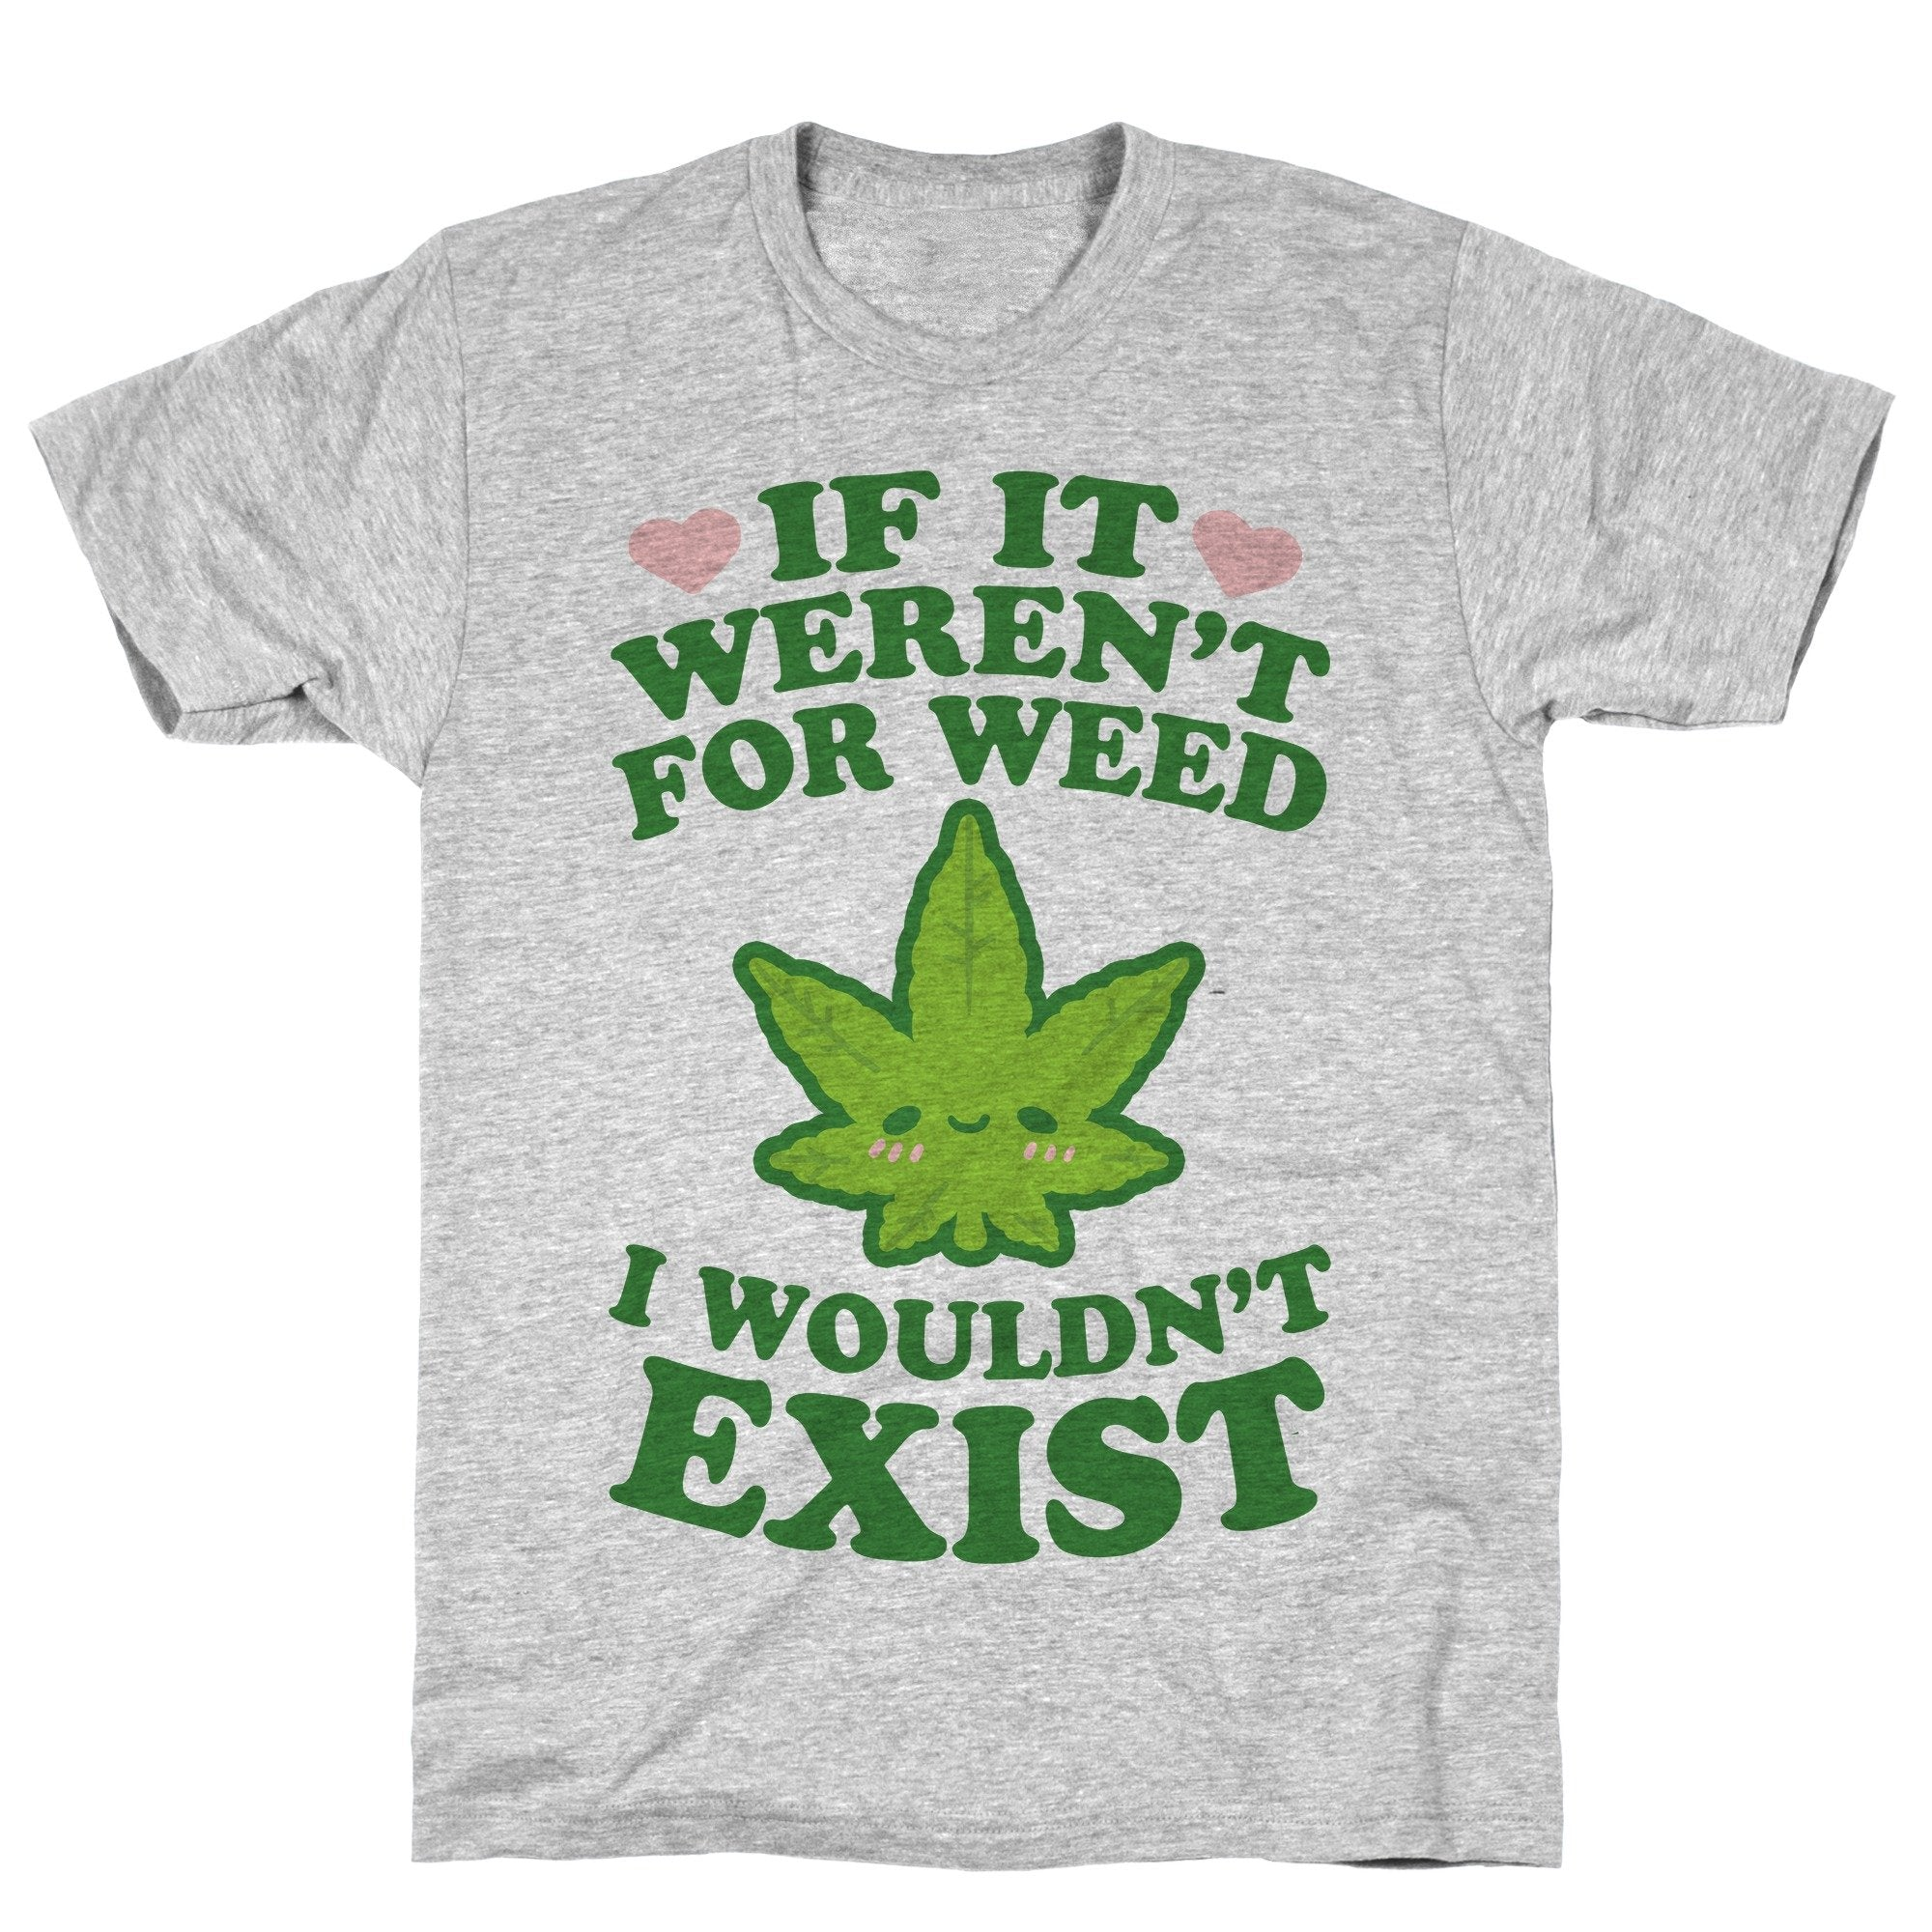 If It Weren't For Weed I Wouldn't Exist Athletic Gray Unisex Cotton Tee by LookHUMAN